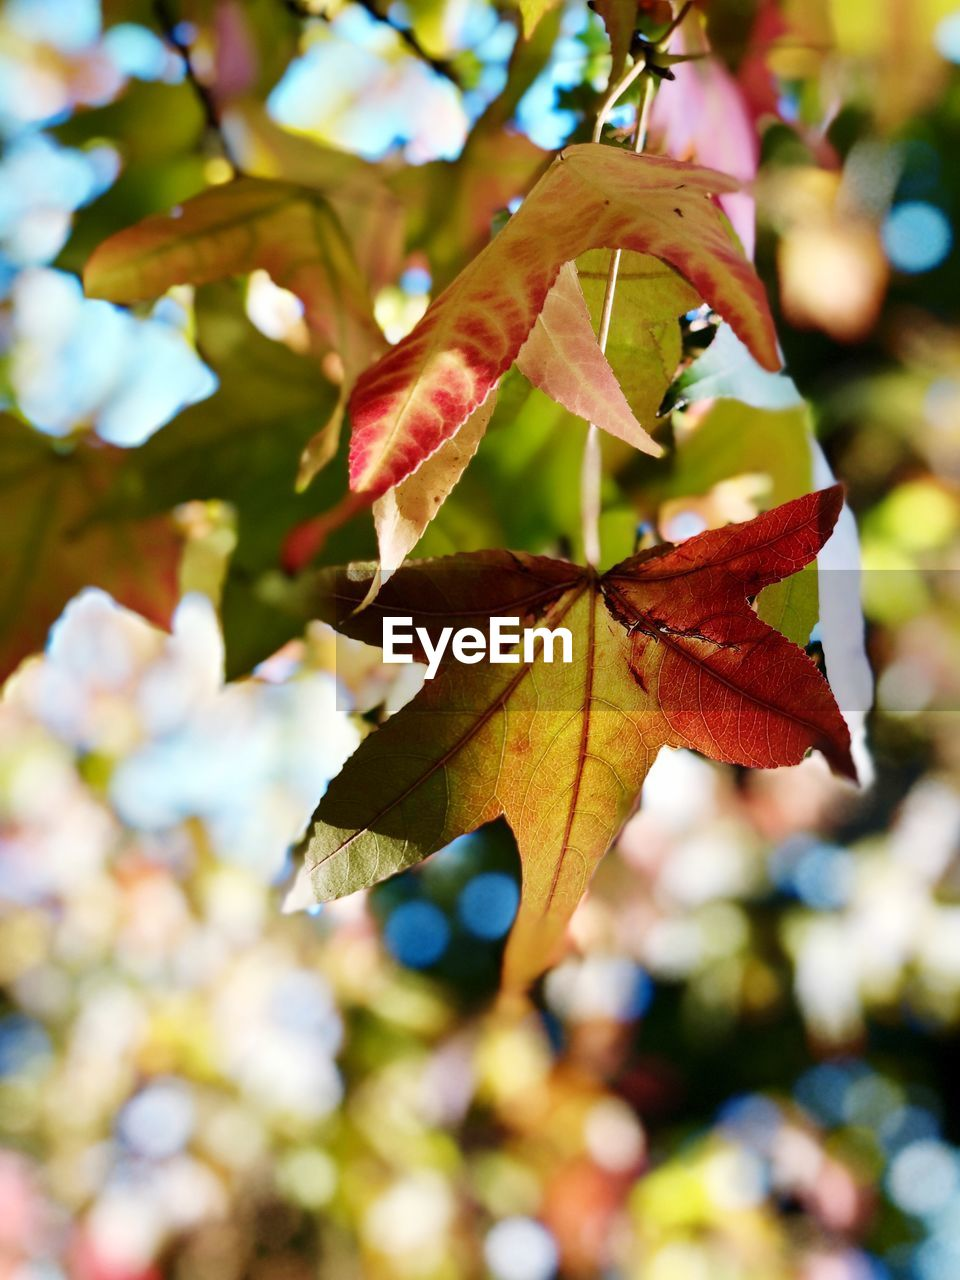 leaf, plant part, focus on foreground, plant, change, tree, autumn, close-up, day, no people, beauty in nature, growth, nature, outdoors, branch, selective focus, leaves, fragility, sunlight, leaf vein, maple leaf, natural condition